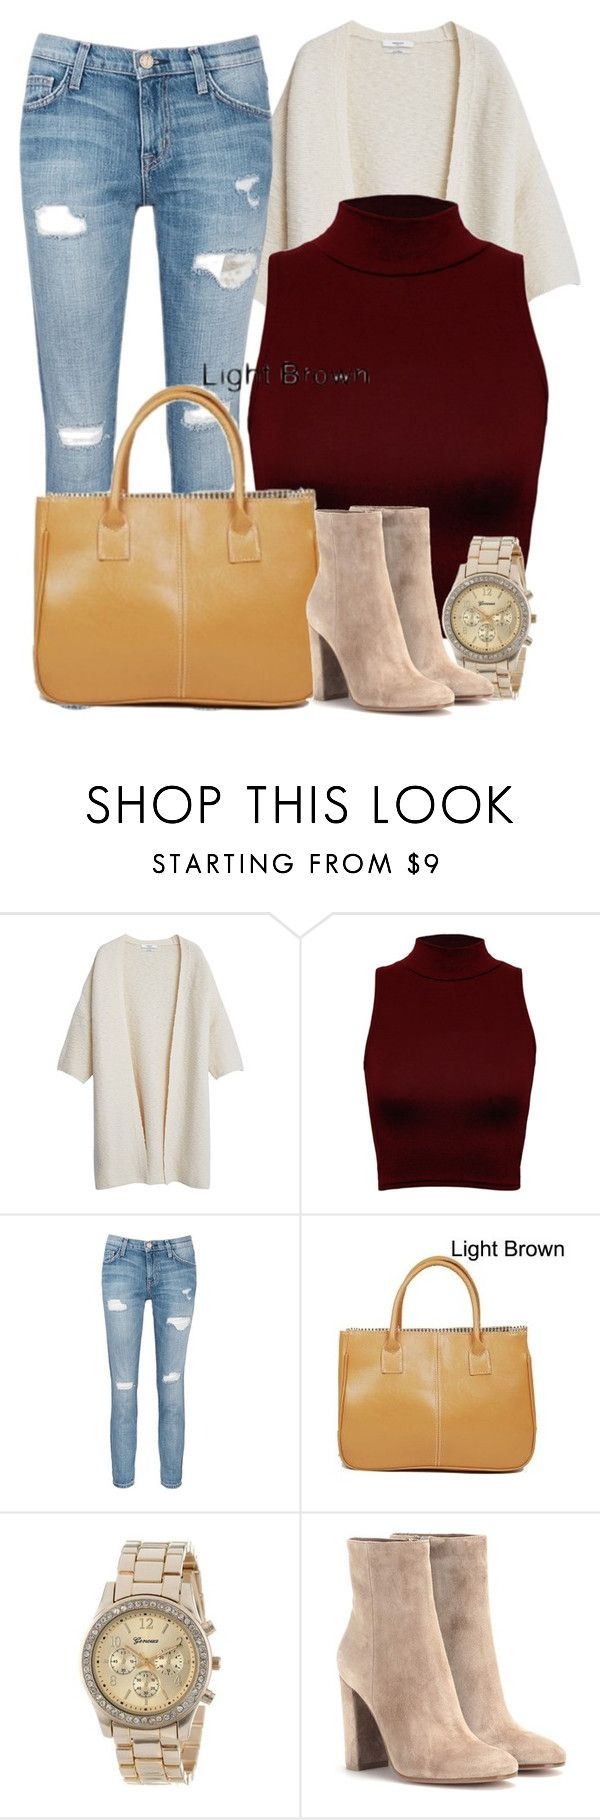 """""""Fall Party Outfit 2015"""" by myfriendshop ❤ liked on Polyvore featuring MANGO, WearAll, Current/Elliott and Gianvito Rossi"""